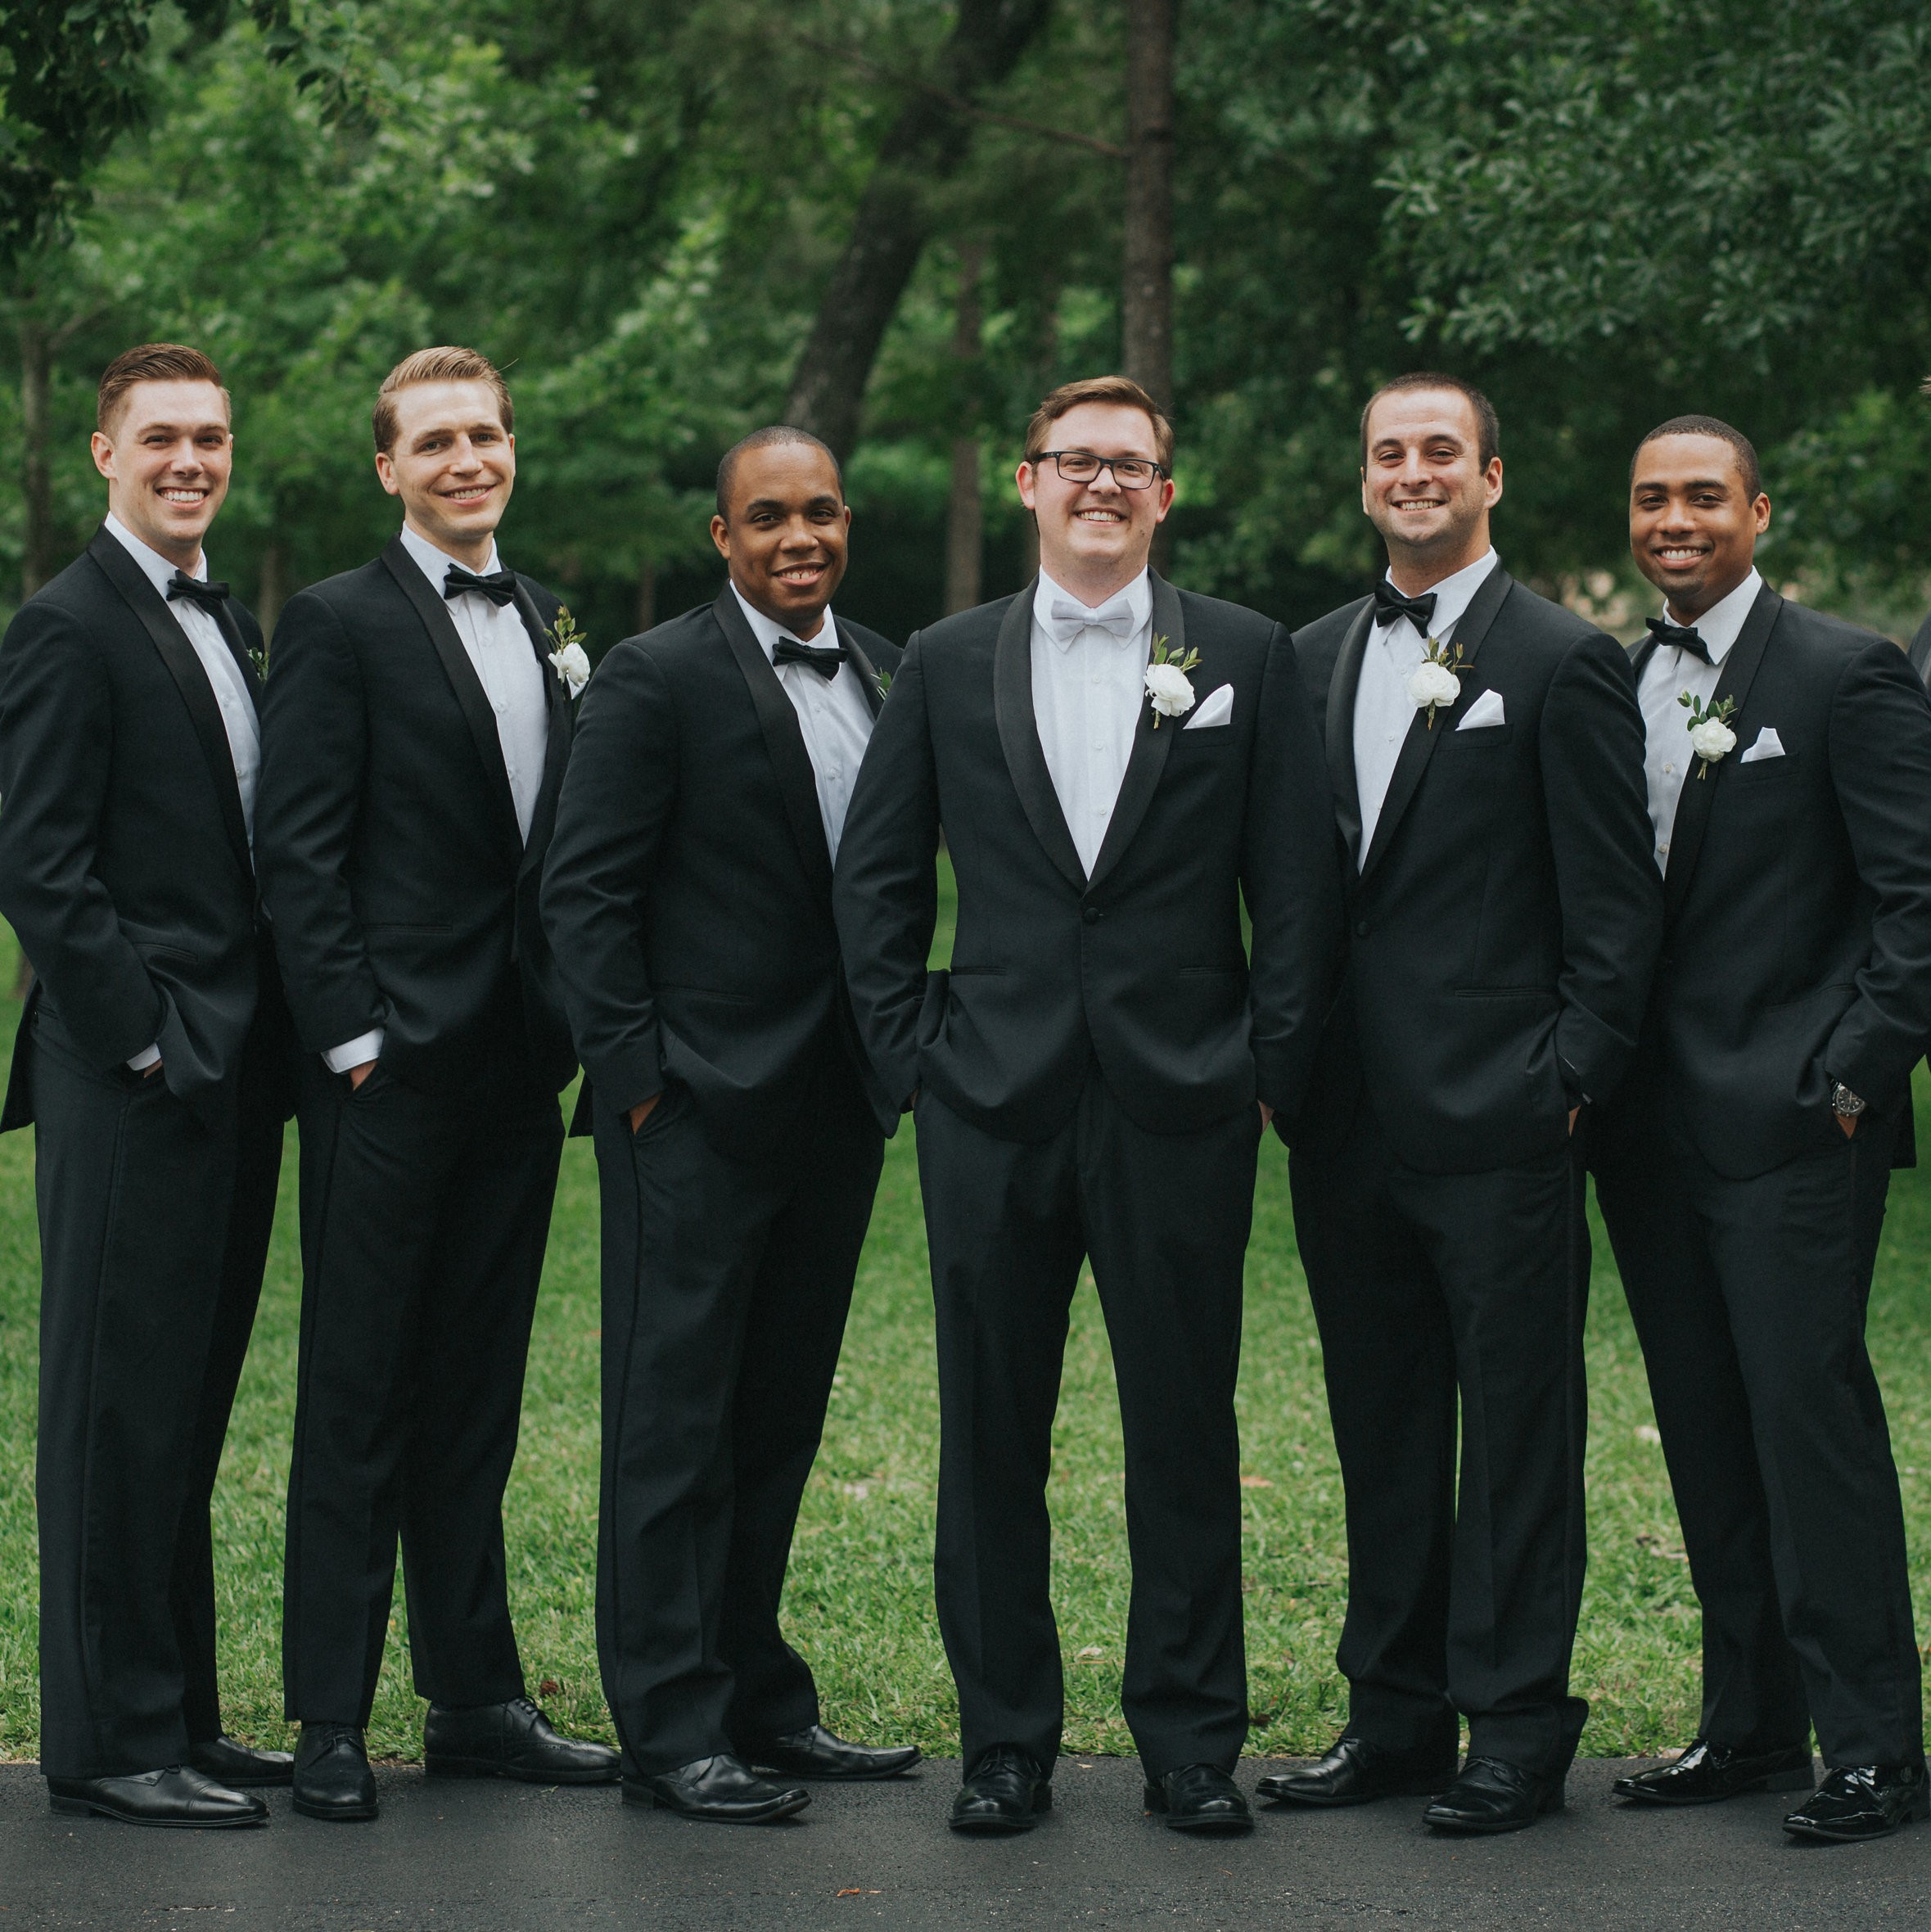 The groom with his groomsmen.